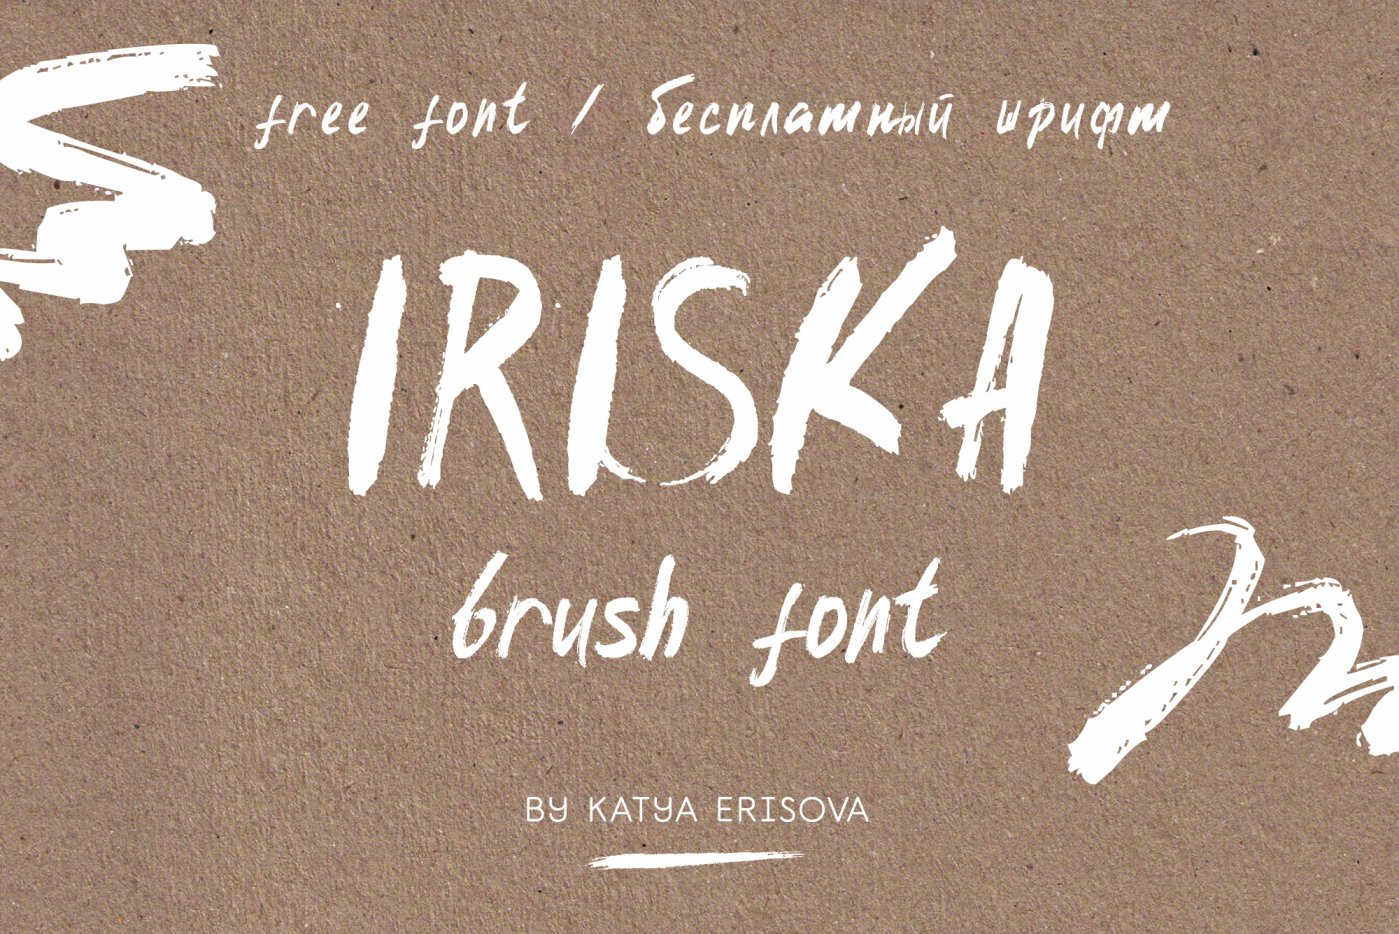 Шрифт Iriska Brush скачать